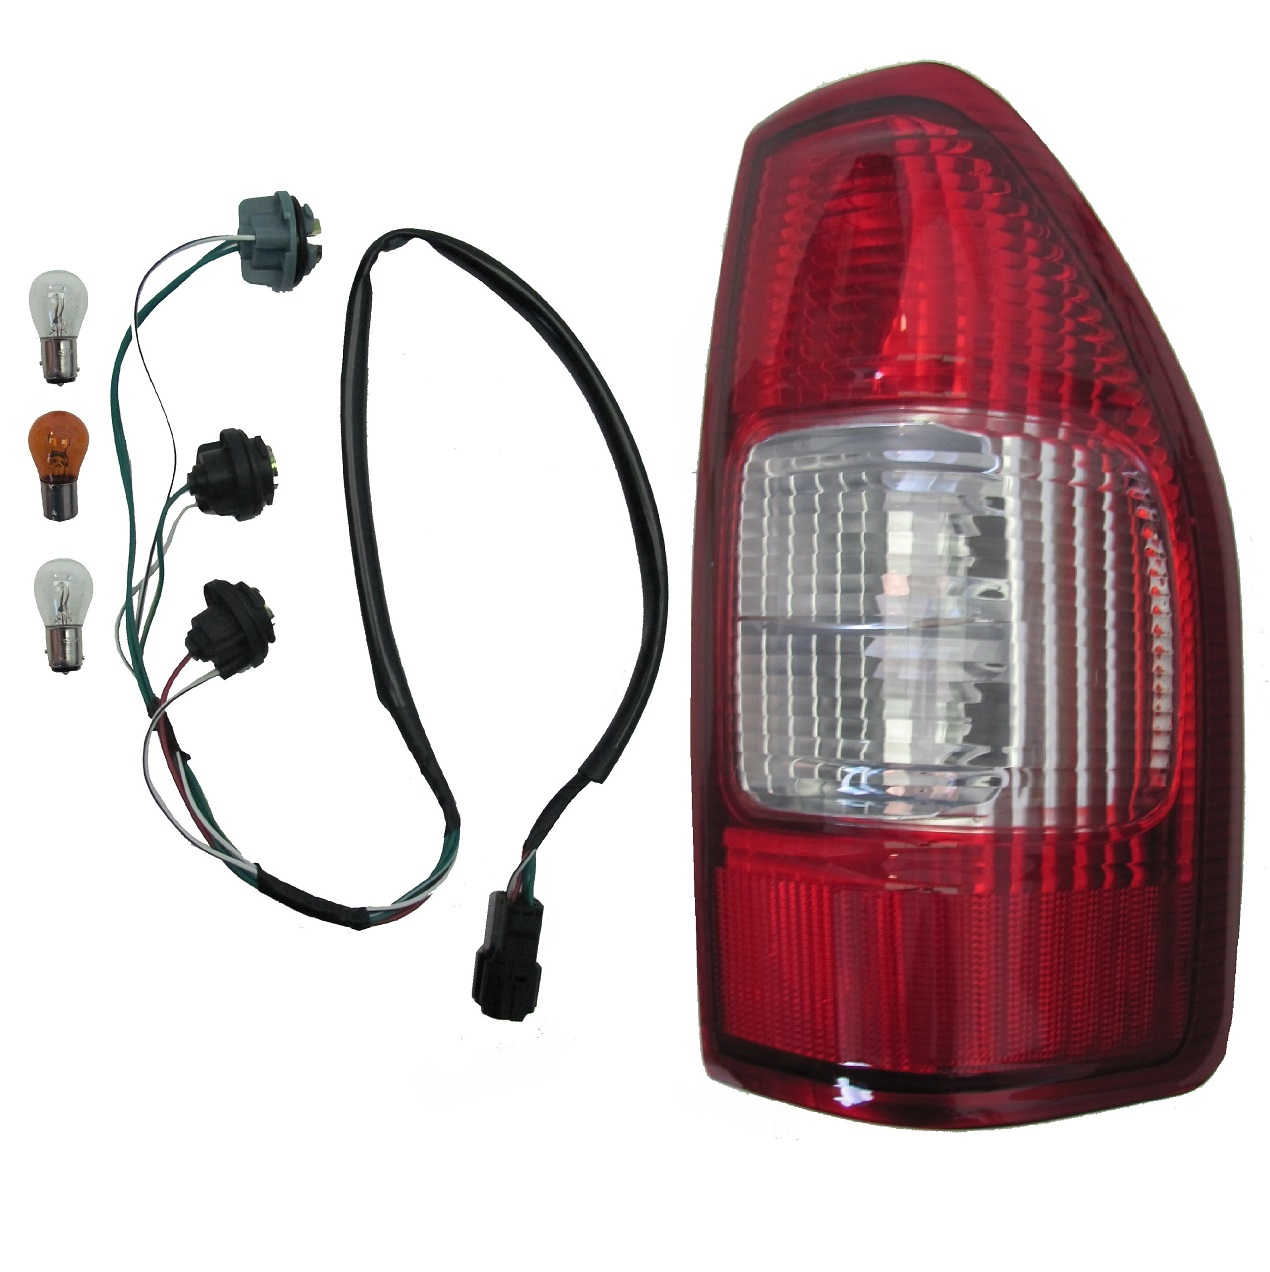 rear light rh for isuzu rodeo dmax denver pickup truck 2000 Isuzu Rodeo 2005 Isuzu Rodeo